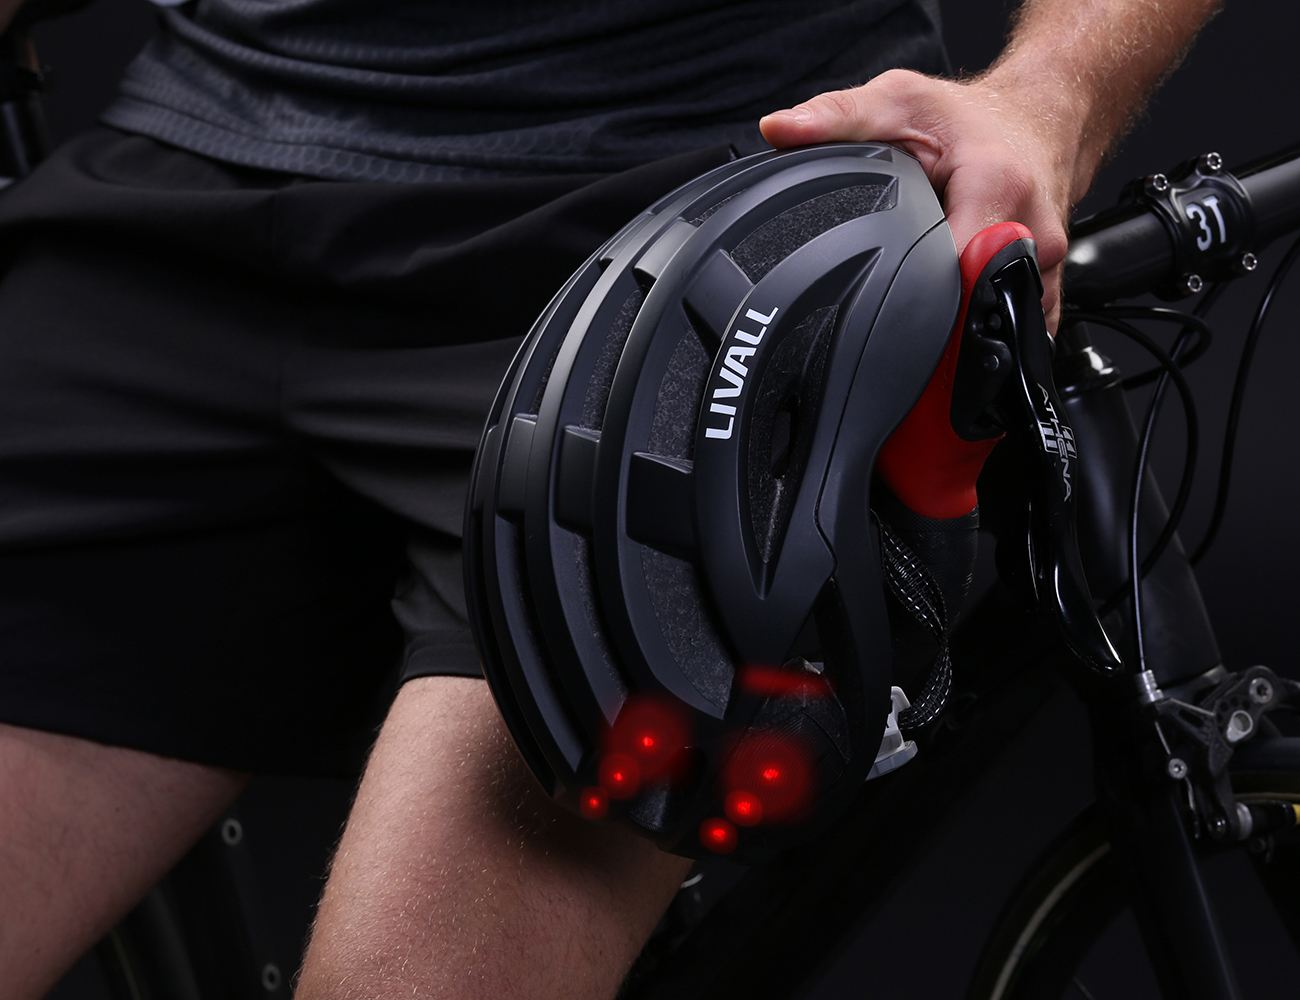 LIVALL Cycling Helmet – Smart, Safe and Simple